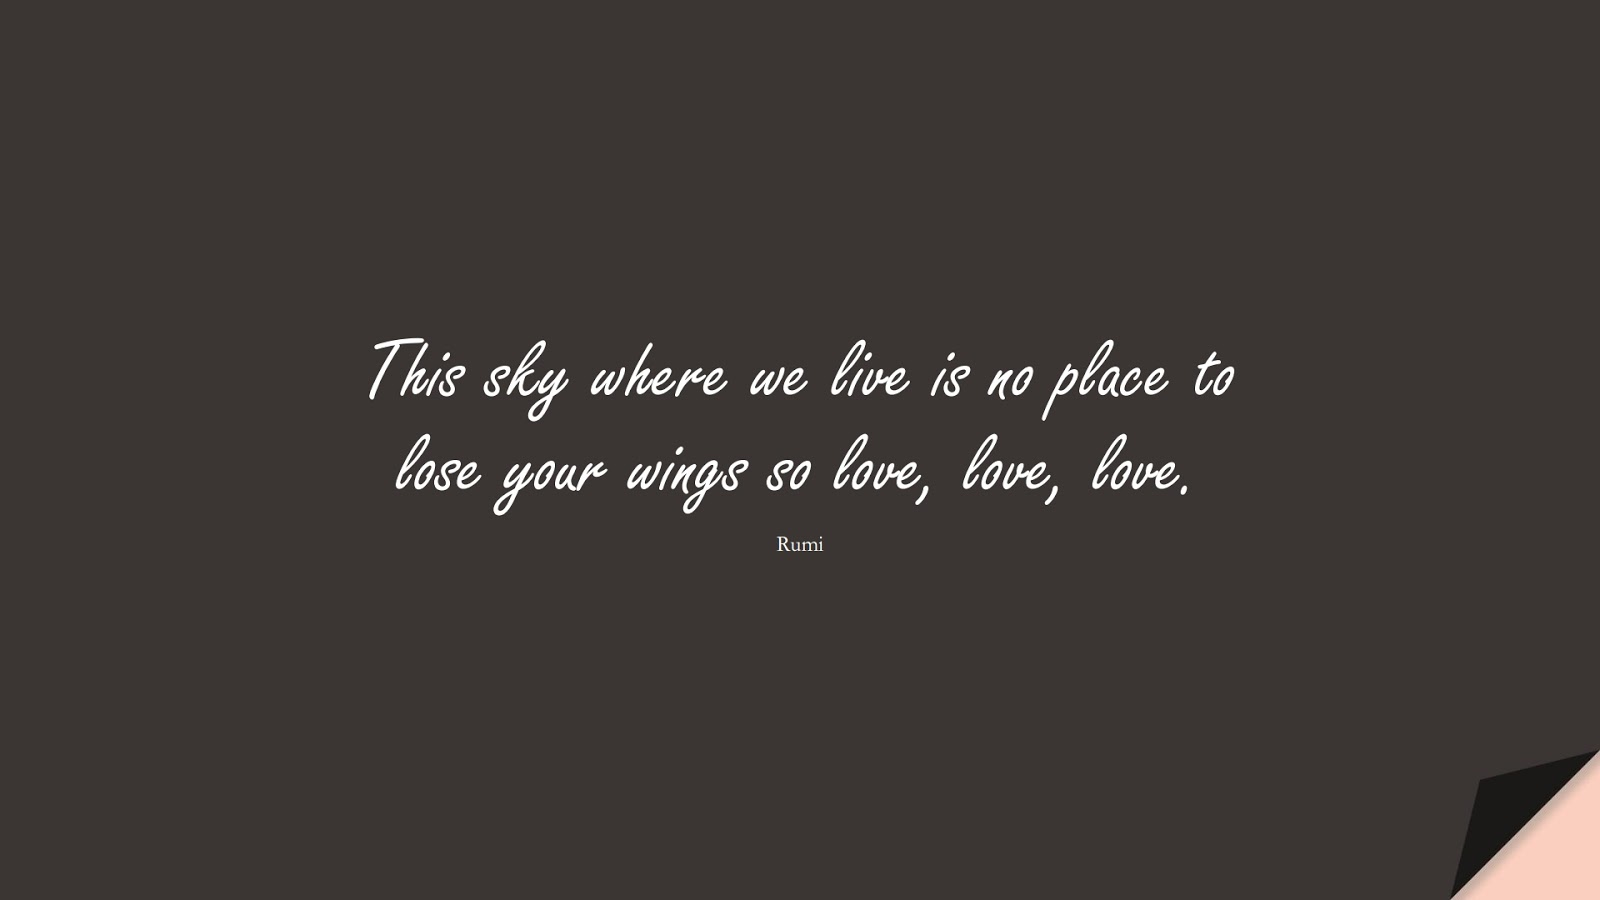 This sky where we live is no place to lose your wings so love, love, love. (Rumi);  #RumiQuotes